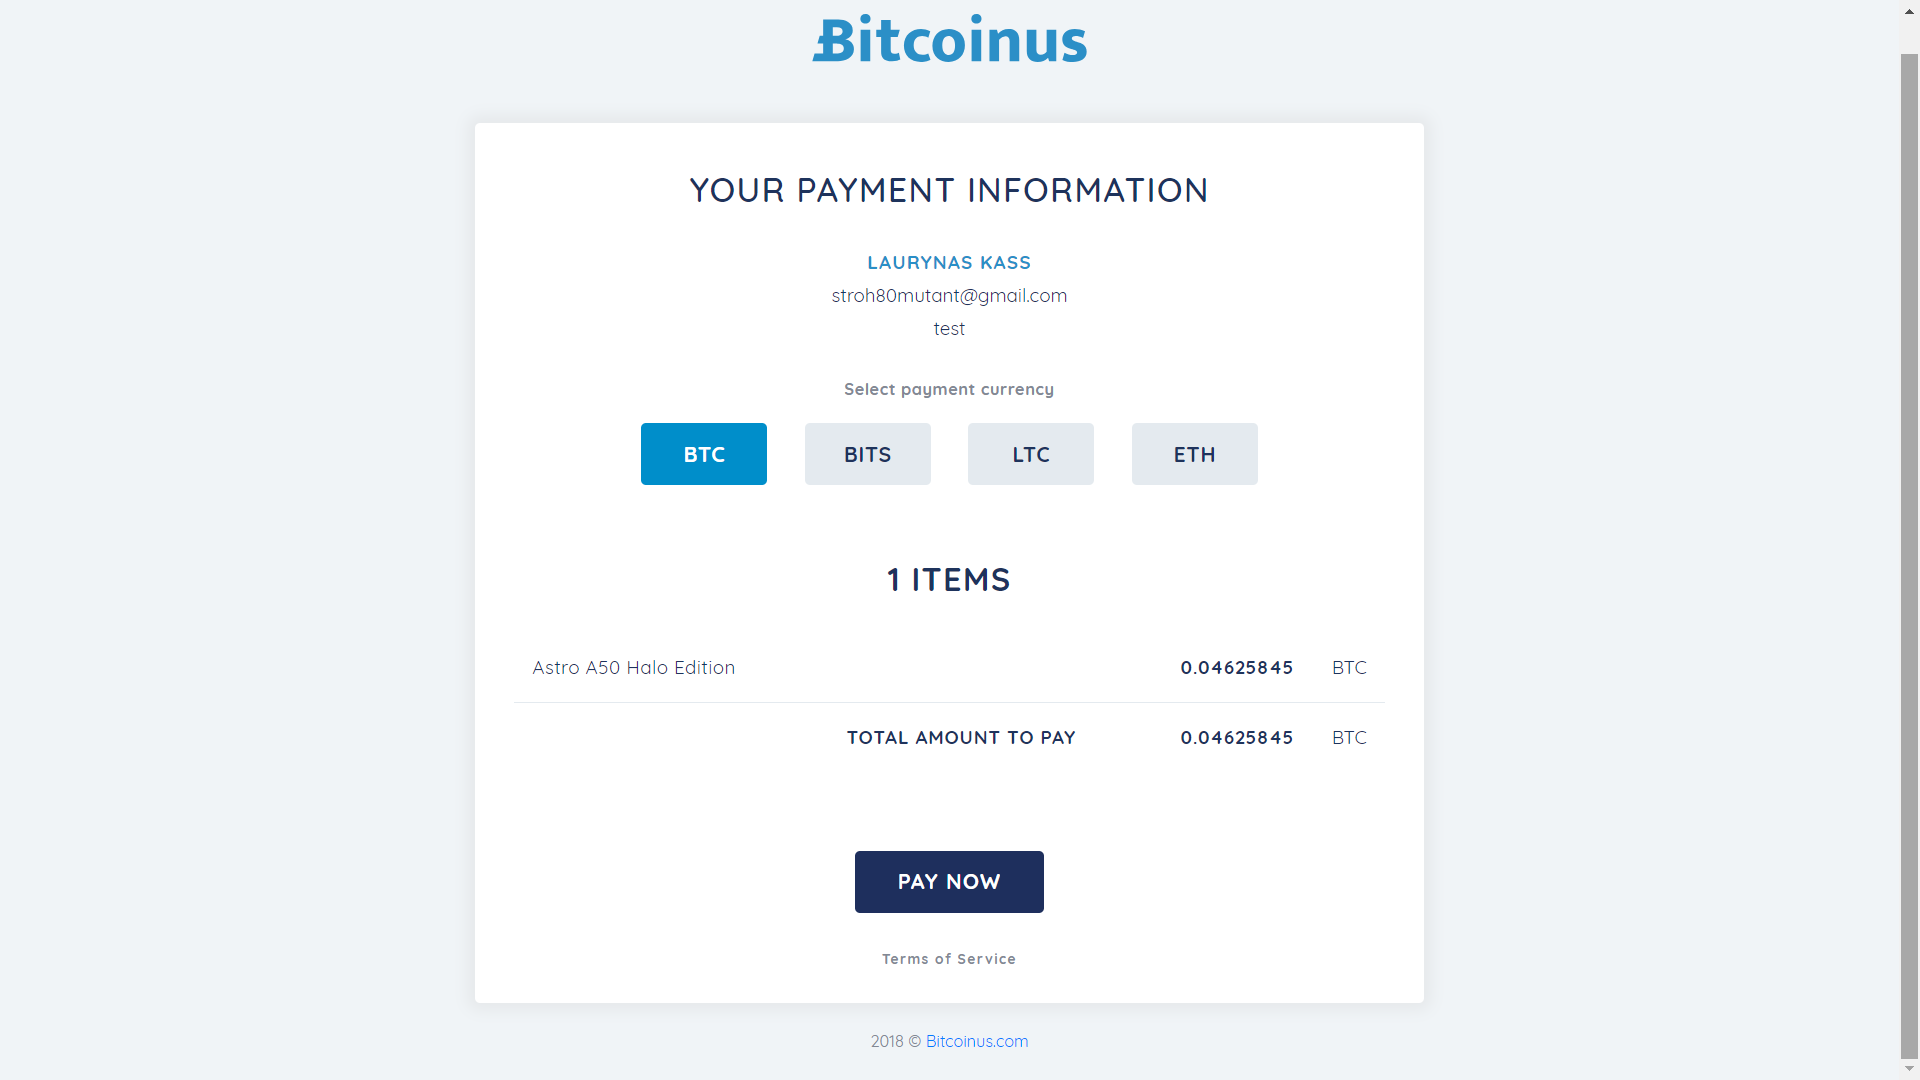 Bitcoinus checkout page 1.